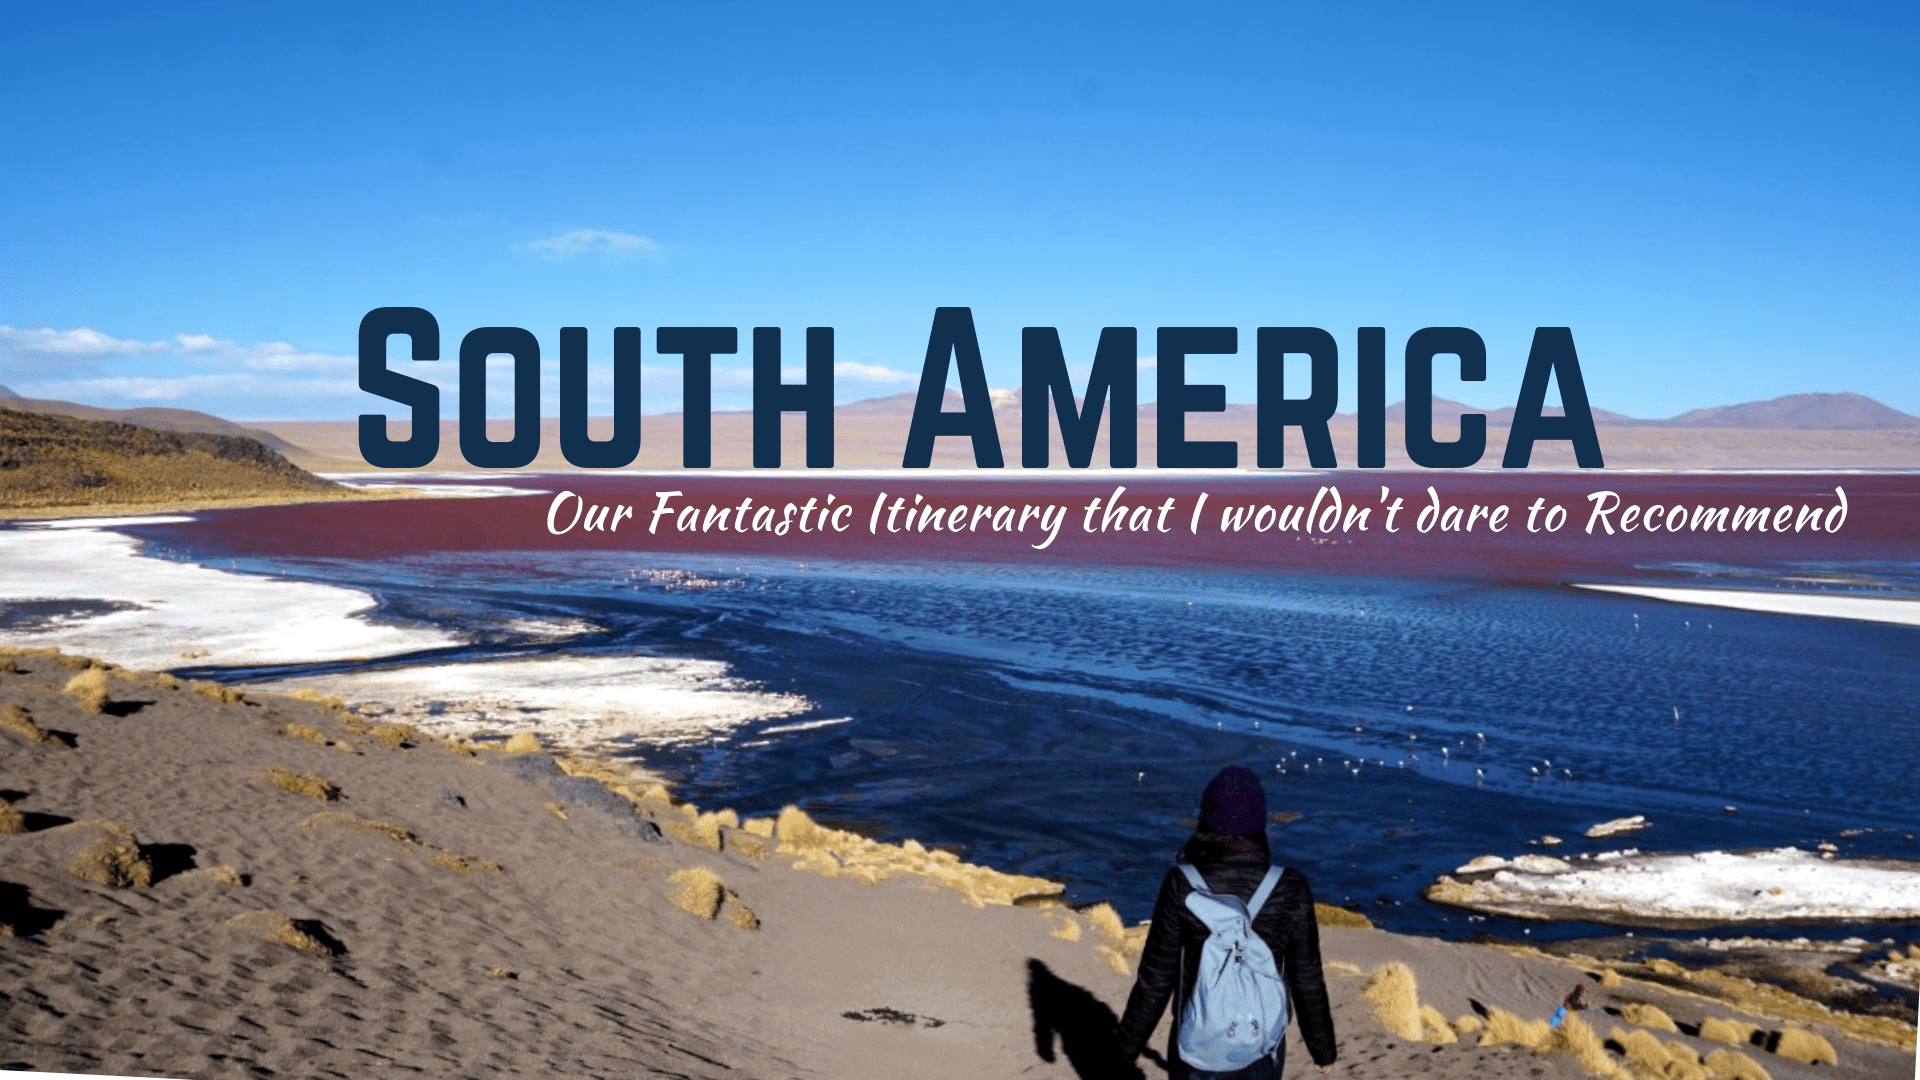 South America: Our Fantastic Itinerary That I Wouldn't Dare to Recommend